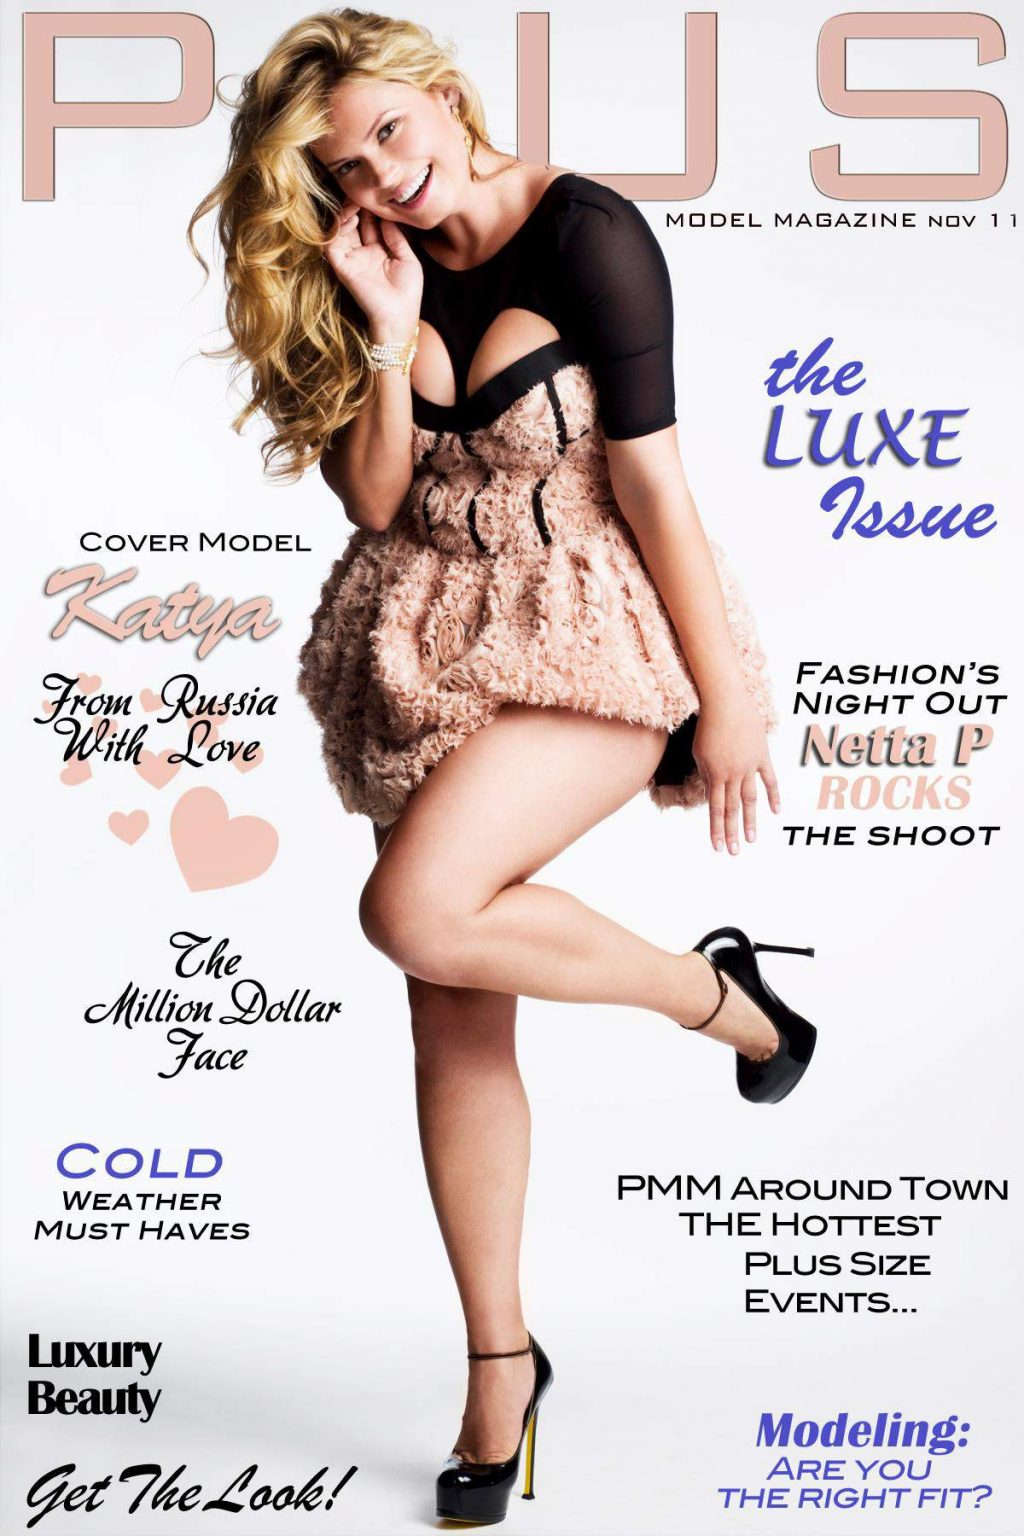 Plus Model Magazine November 2011 Cover